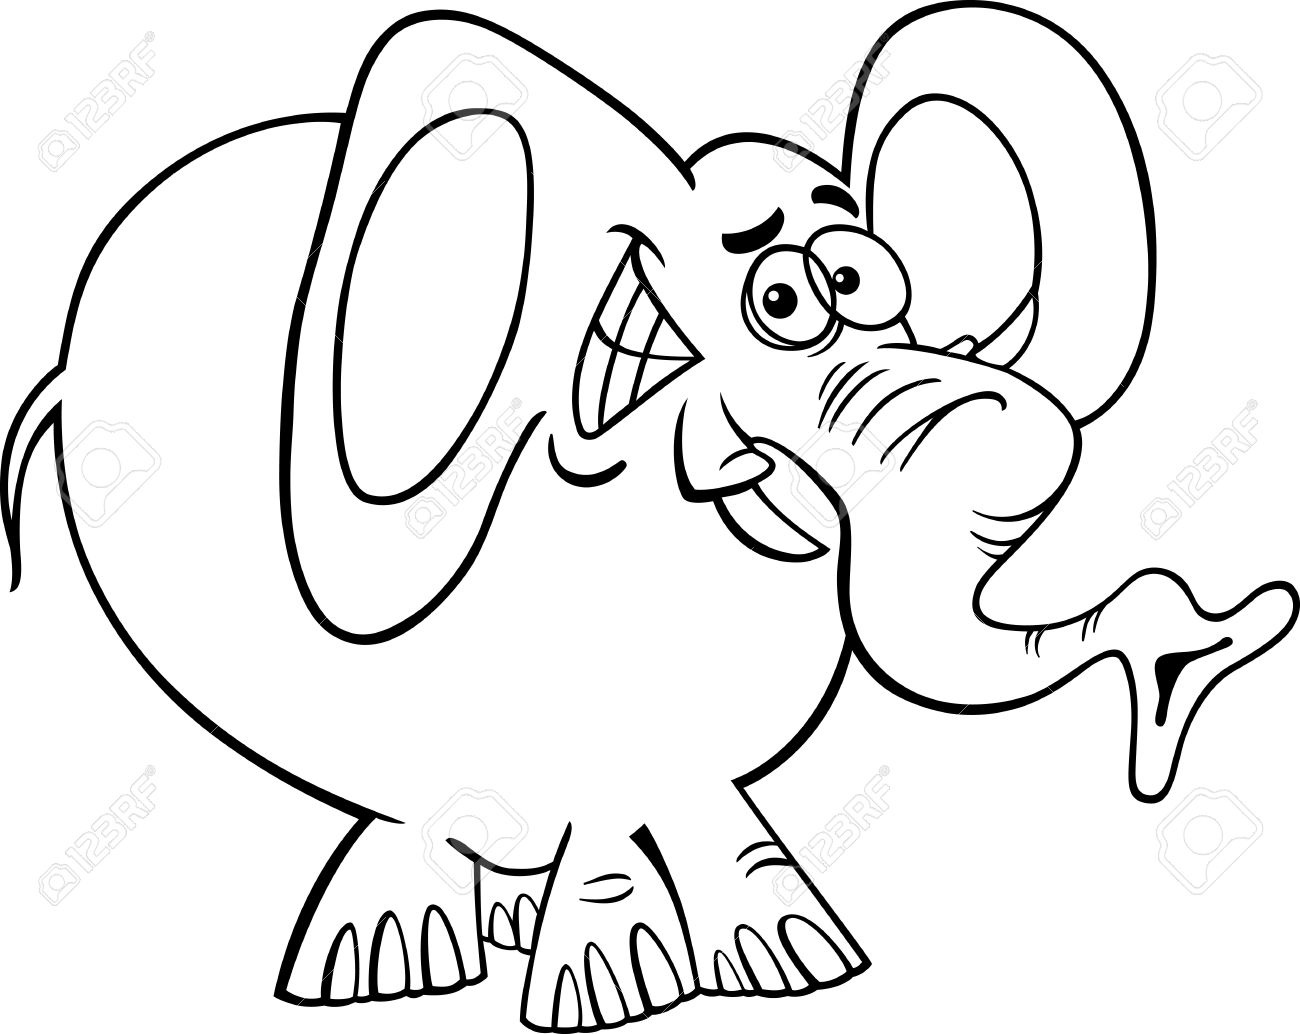 black and white cartoon illustration of funny african elephant